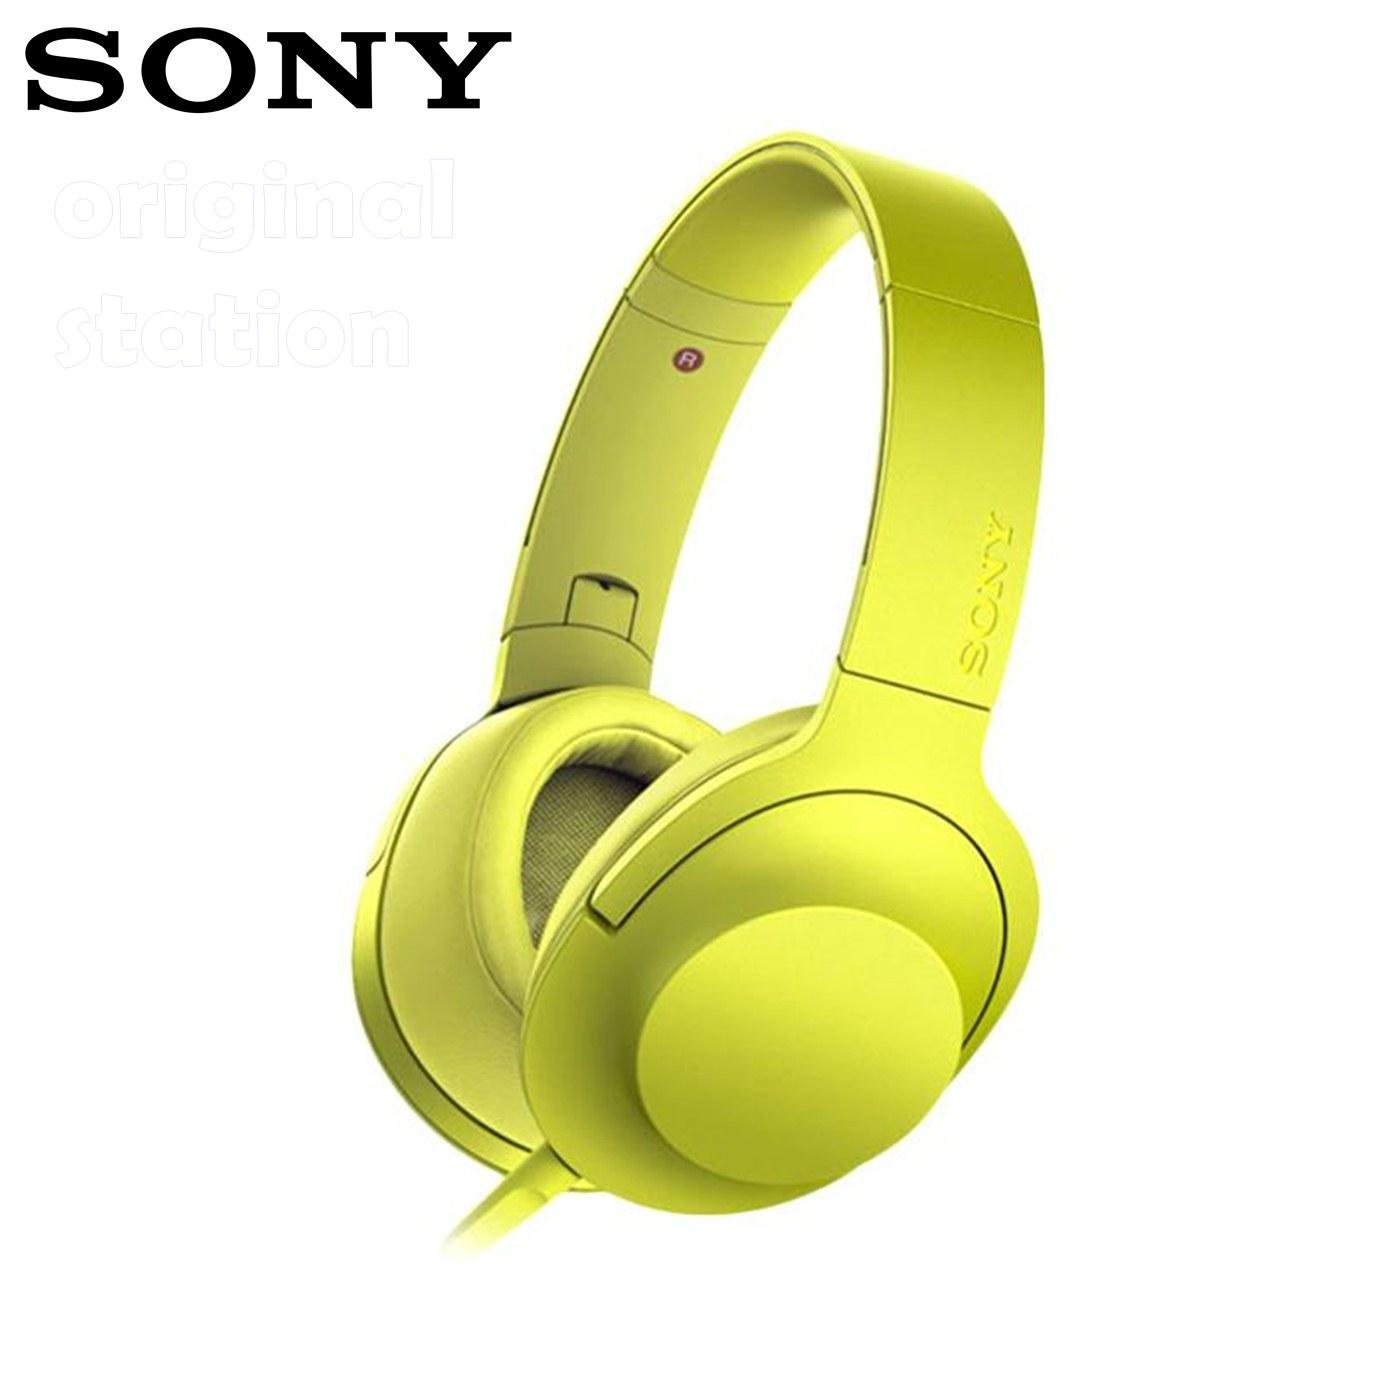 Sony Headset / Hansfree / Ear Bass Audio Phones MDR 100 AAP - OS Color